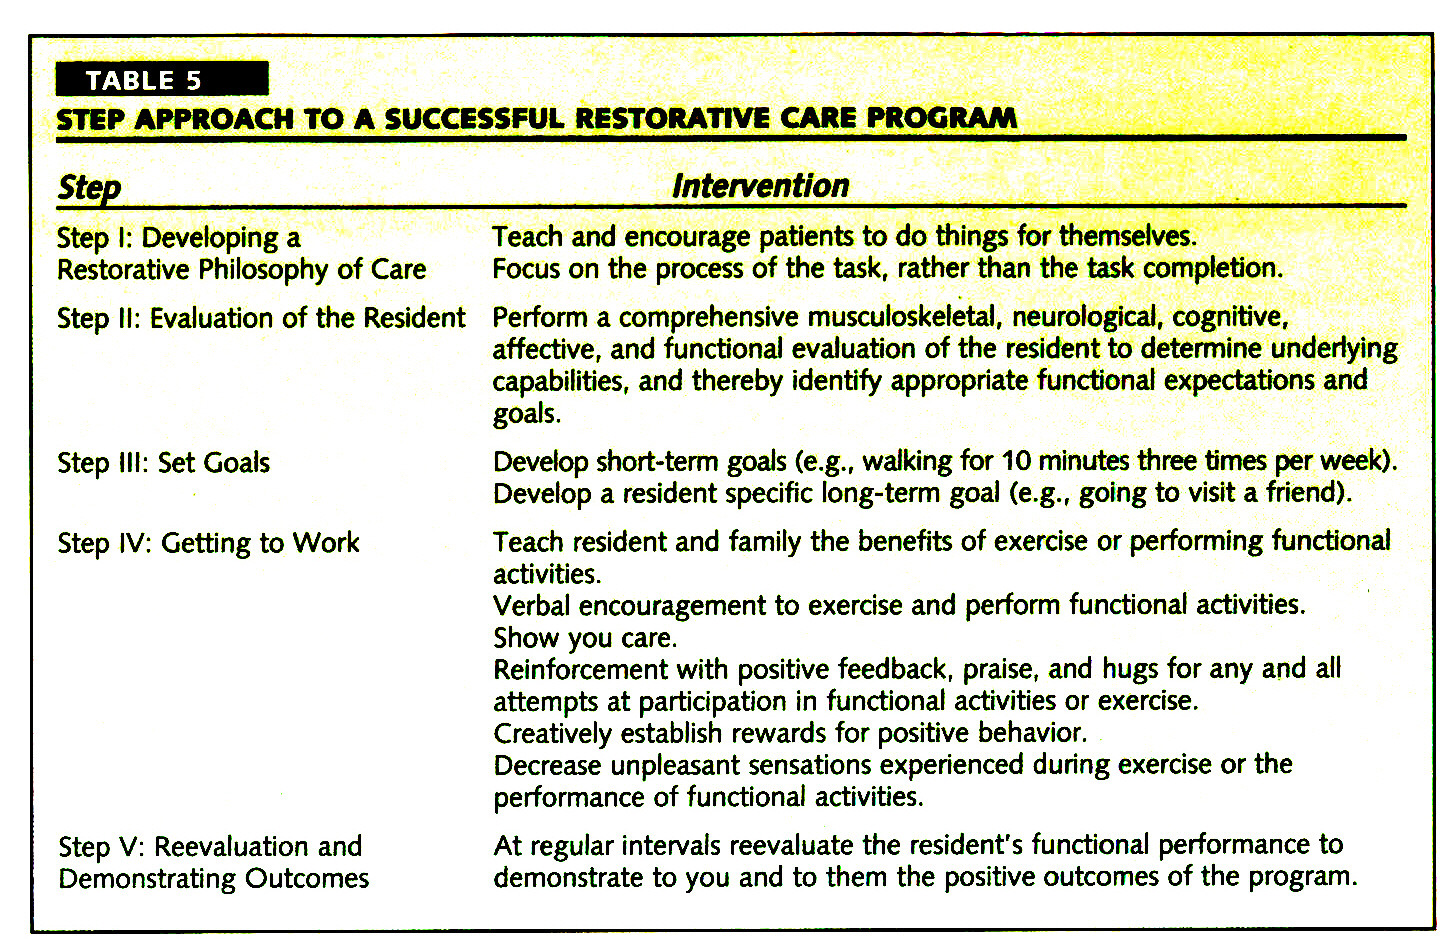 TABLE 5STEP APPROACH TO A SUCCESSFUL RESTORATIVE CARE PROGRAM